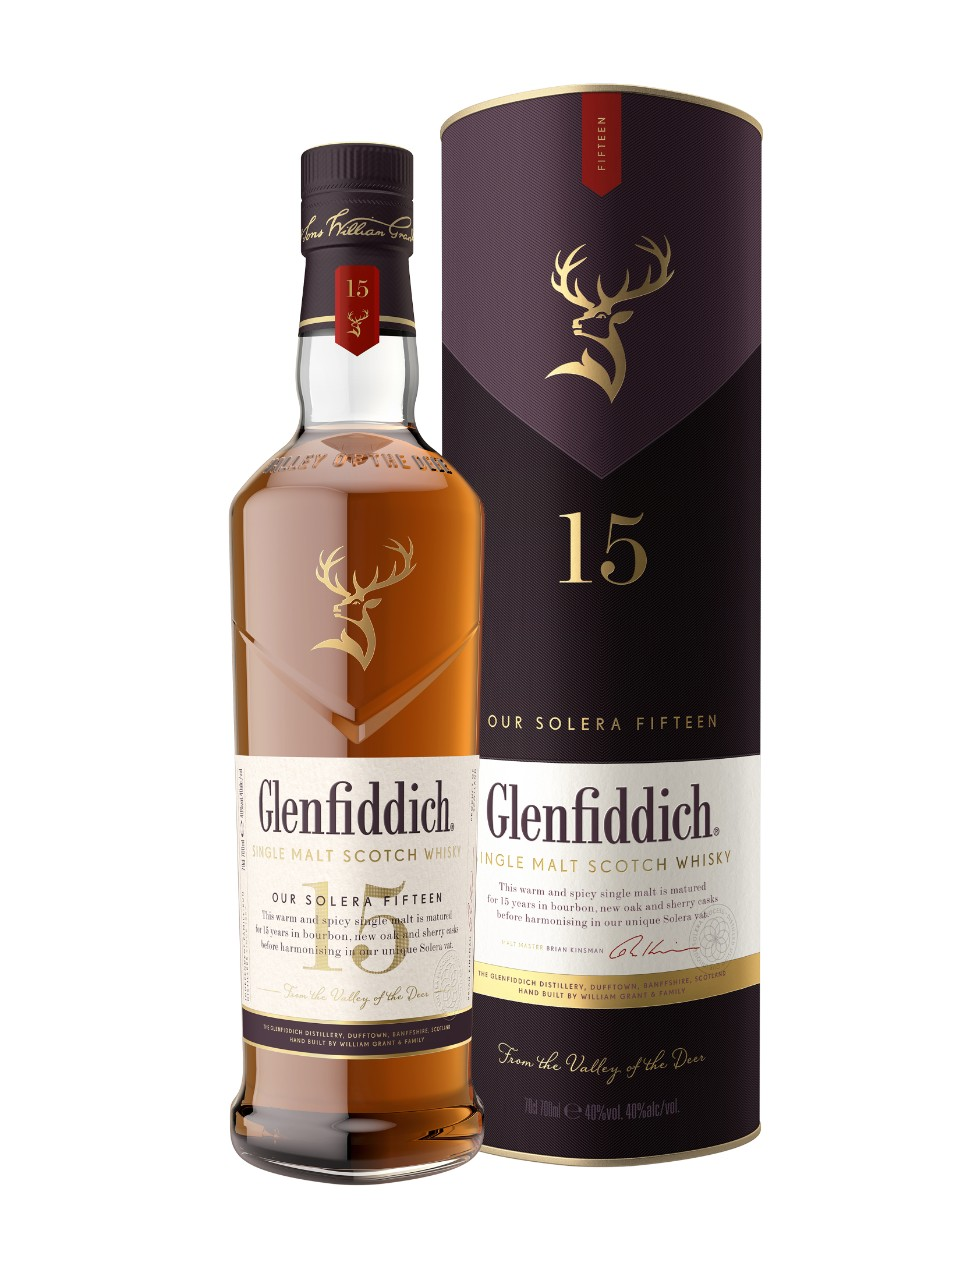 Glenfiddich 15 Year Old Single Malt Scotch Whisky from LCBO